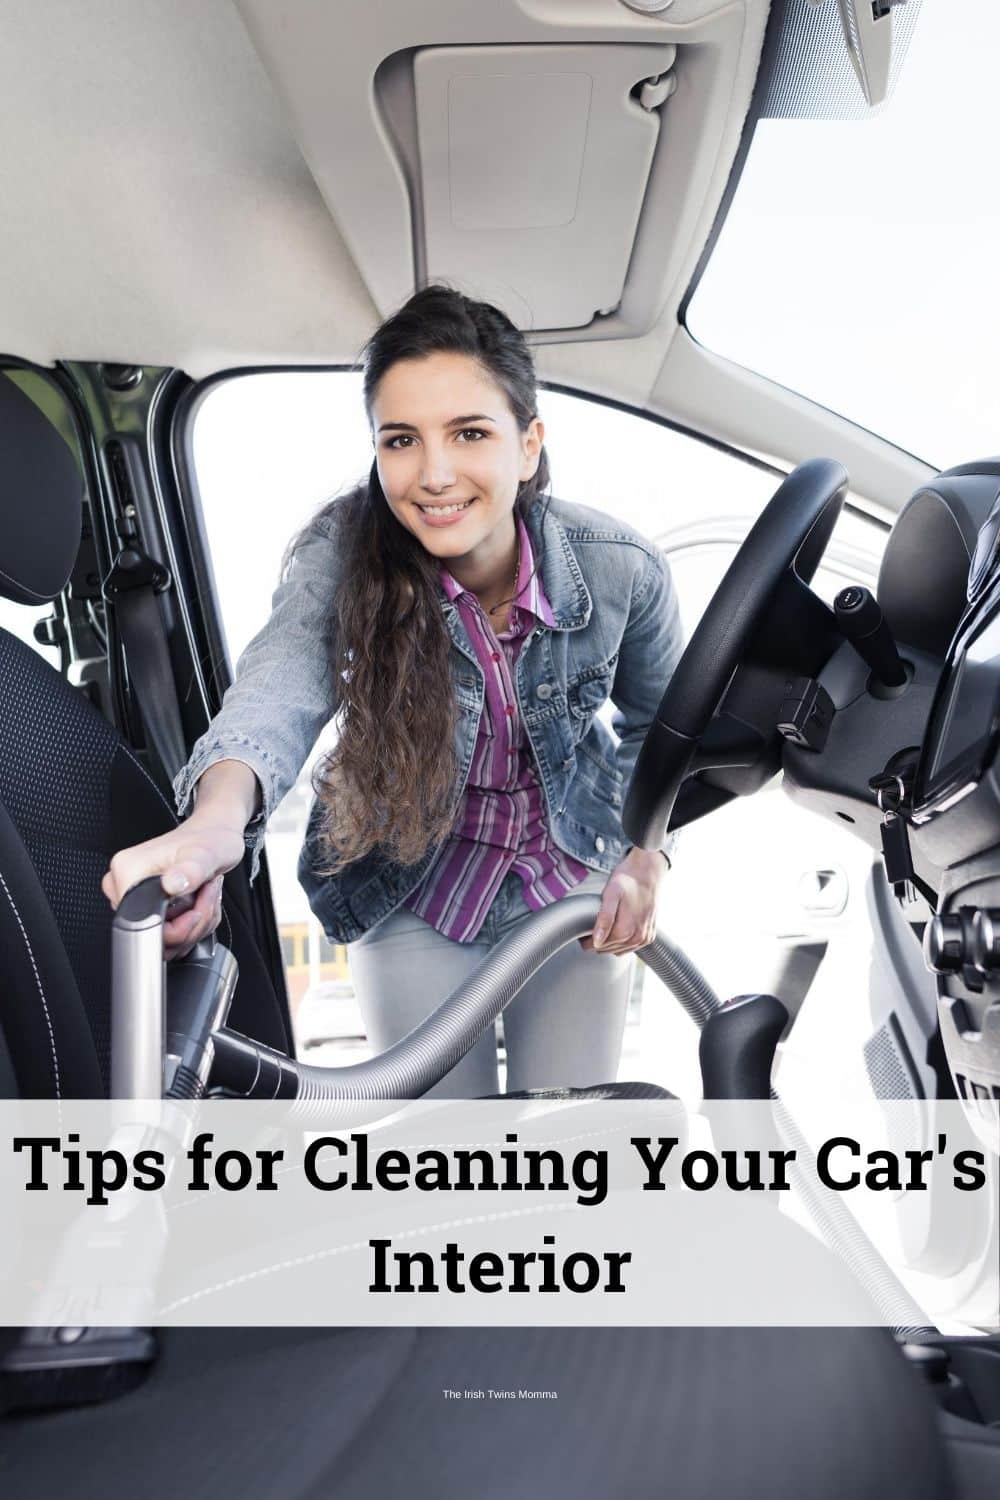 Kids don't really grasp what those cookie crumbs and melting jellybeans can do to your car seats and floor mats. These tips for cleaning your car's interior will help you keep pests and foul odors out of your car. via @irishtwinsmom11